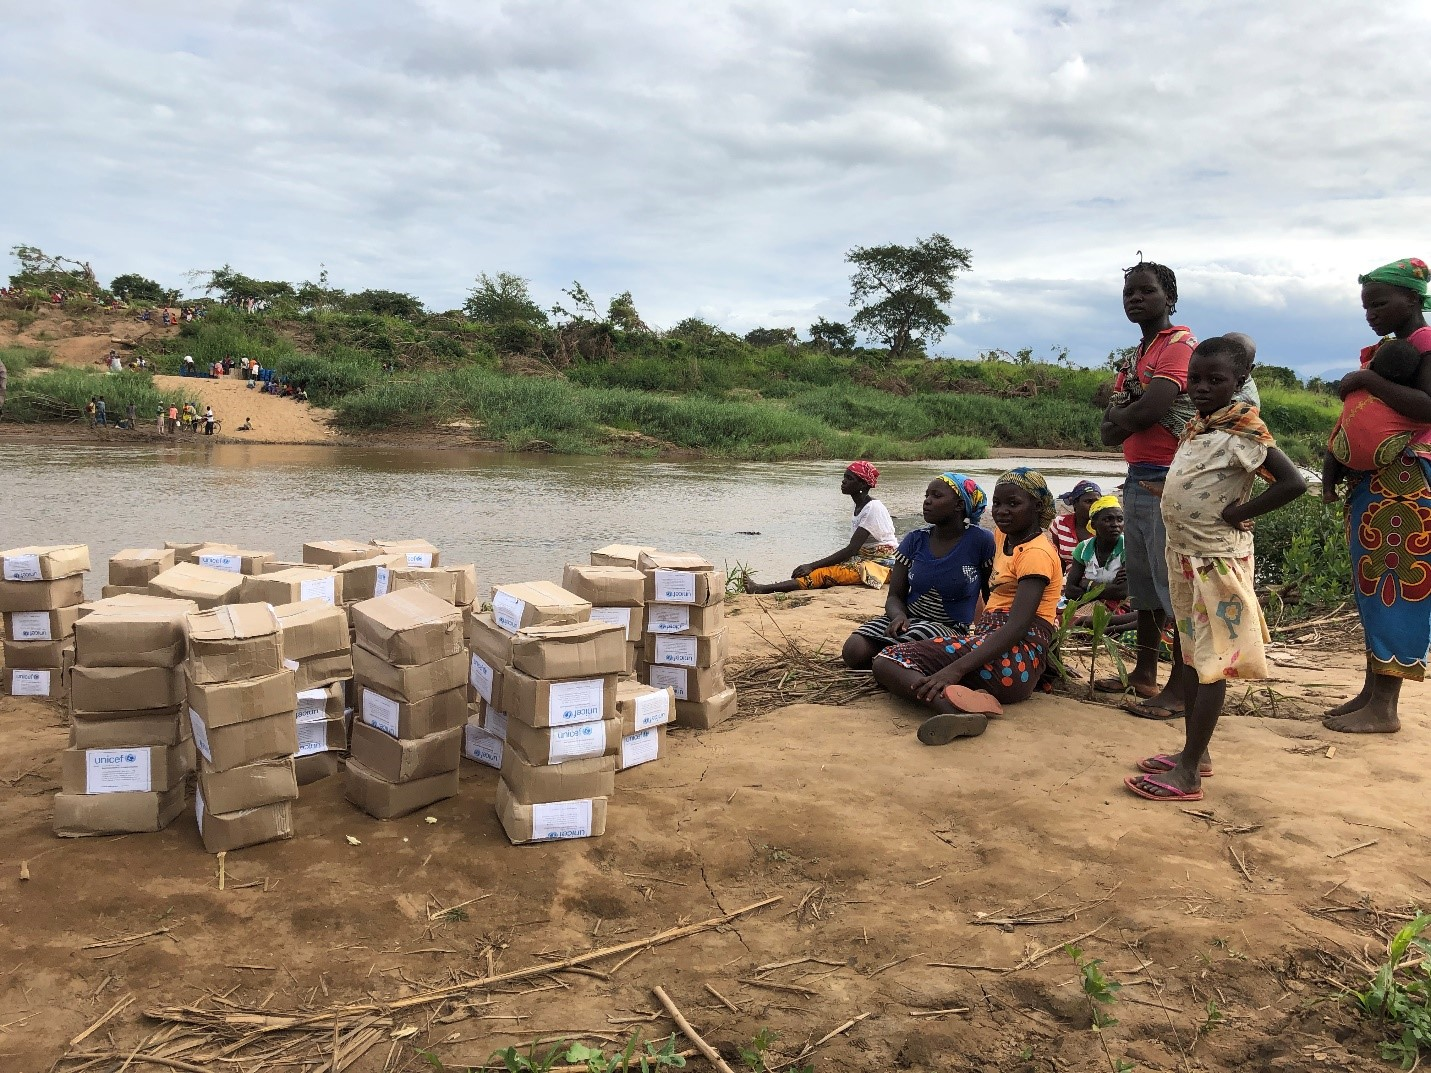 """Distribution of """"dignity kits"""" in central Mozambique. Dignity kits consist of underwear, sanitary pads, and soap for women and girls."""